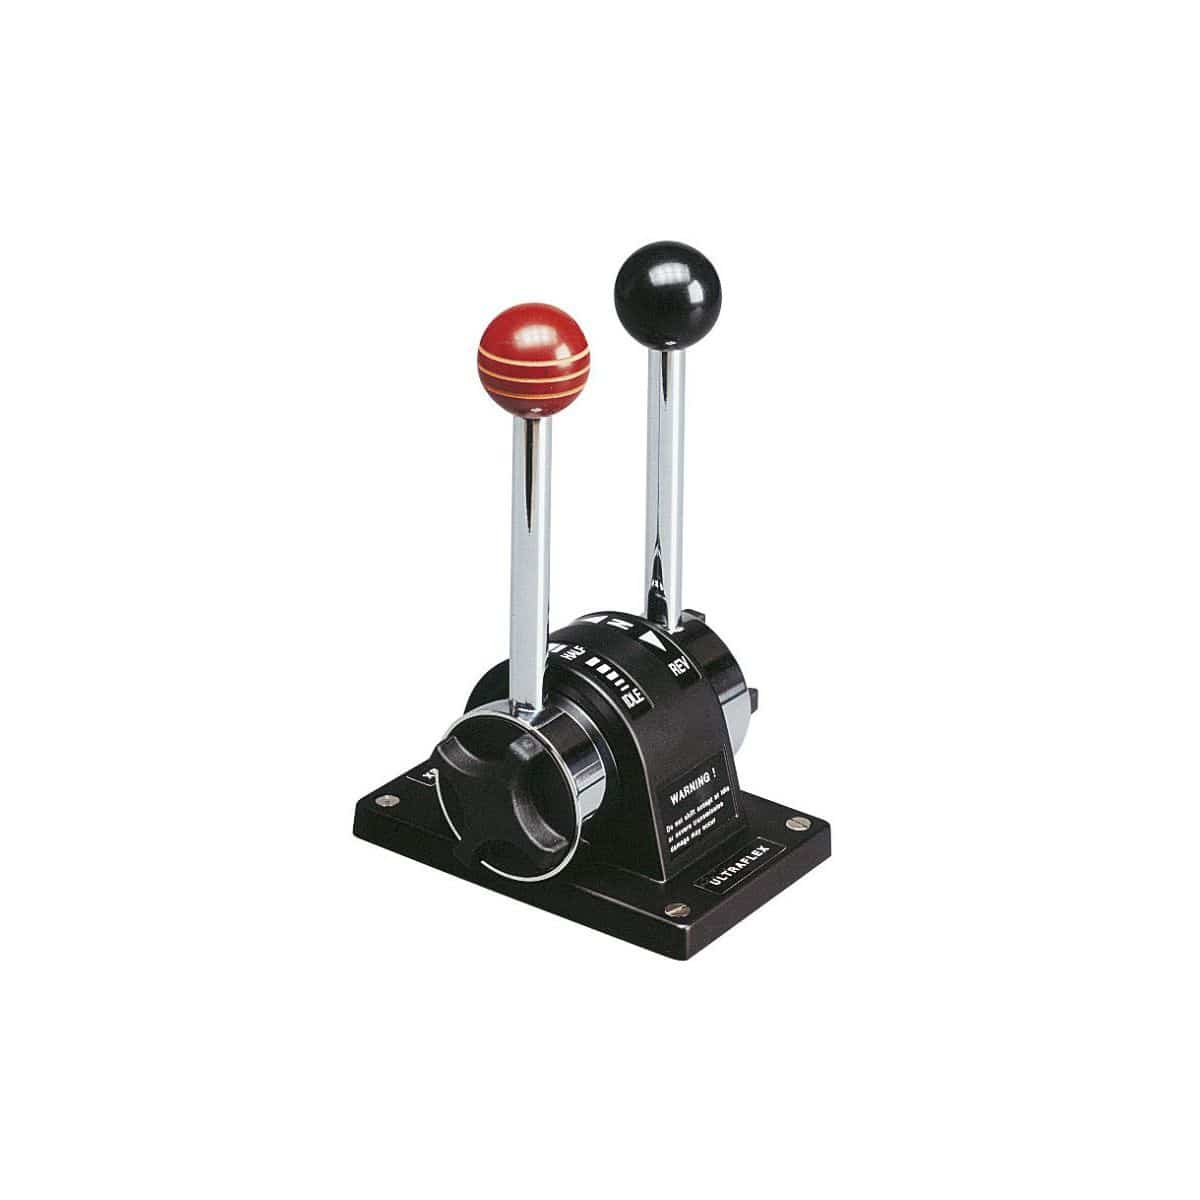 Engine control lever / mechanical / multi-lever / for boats - B99 ...